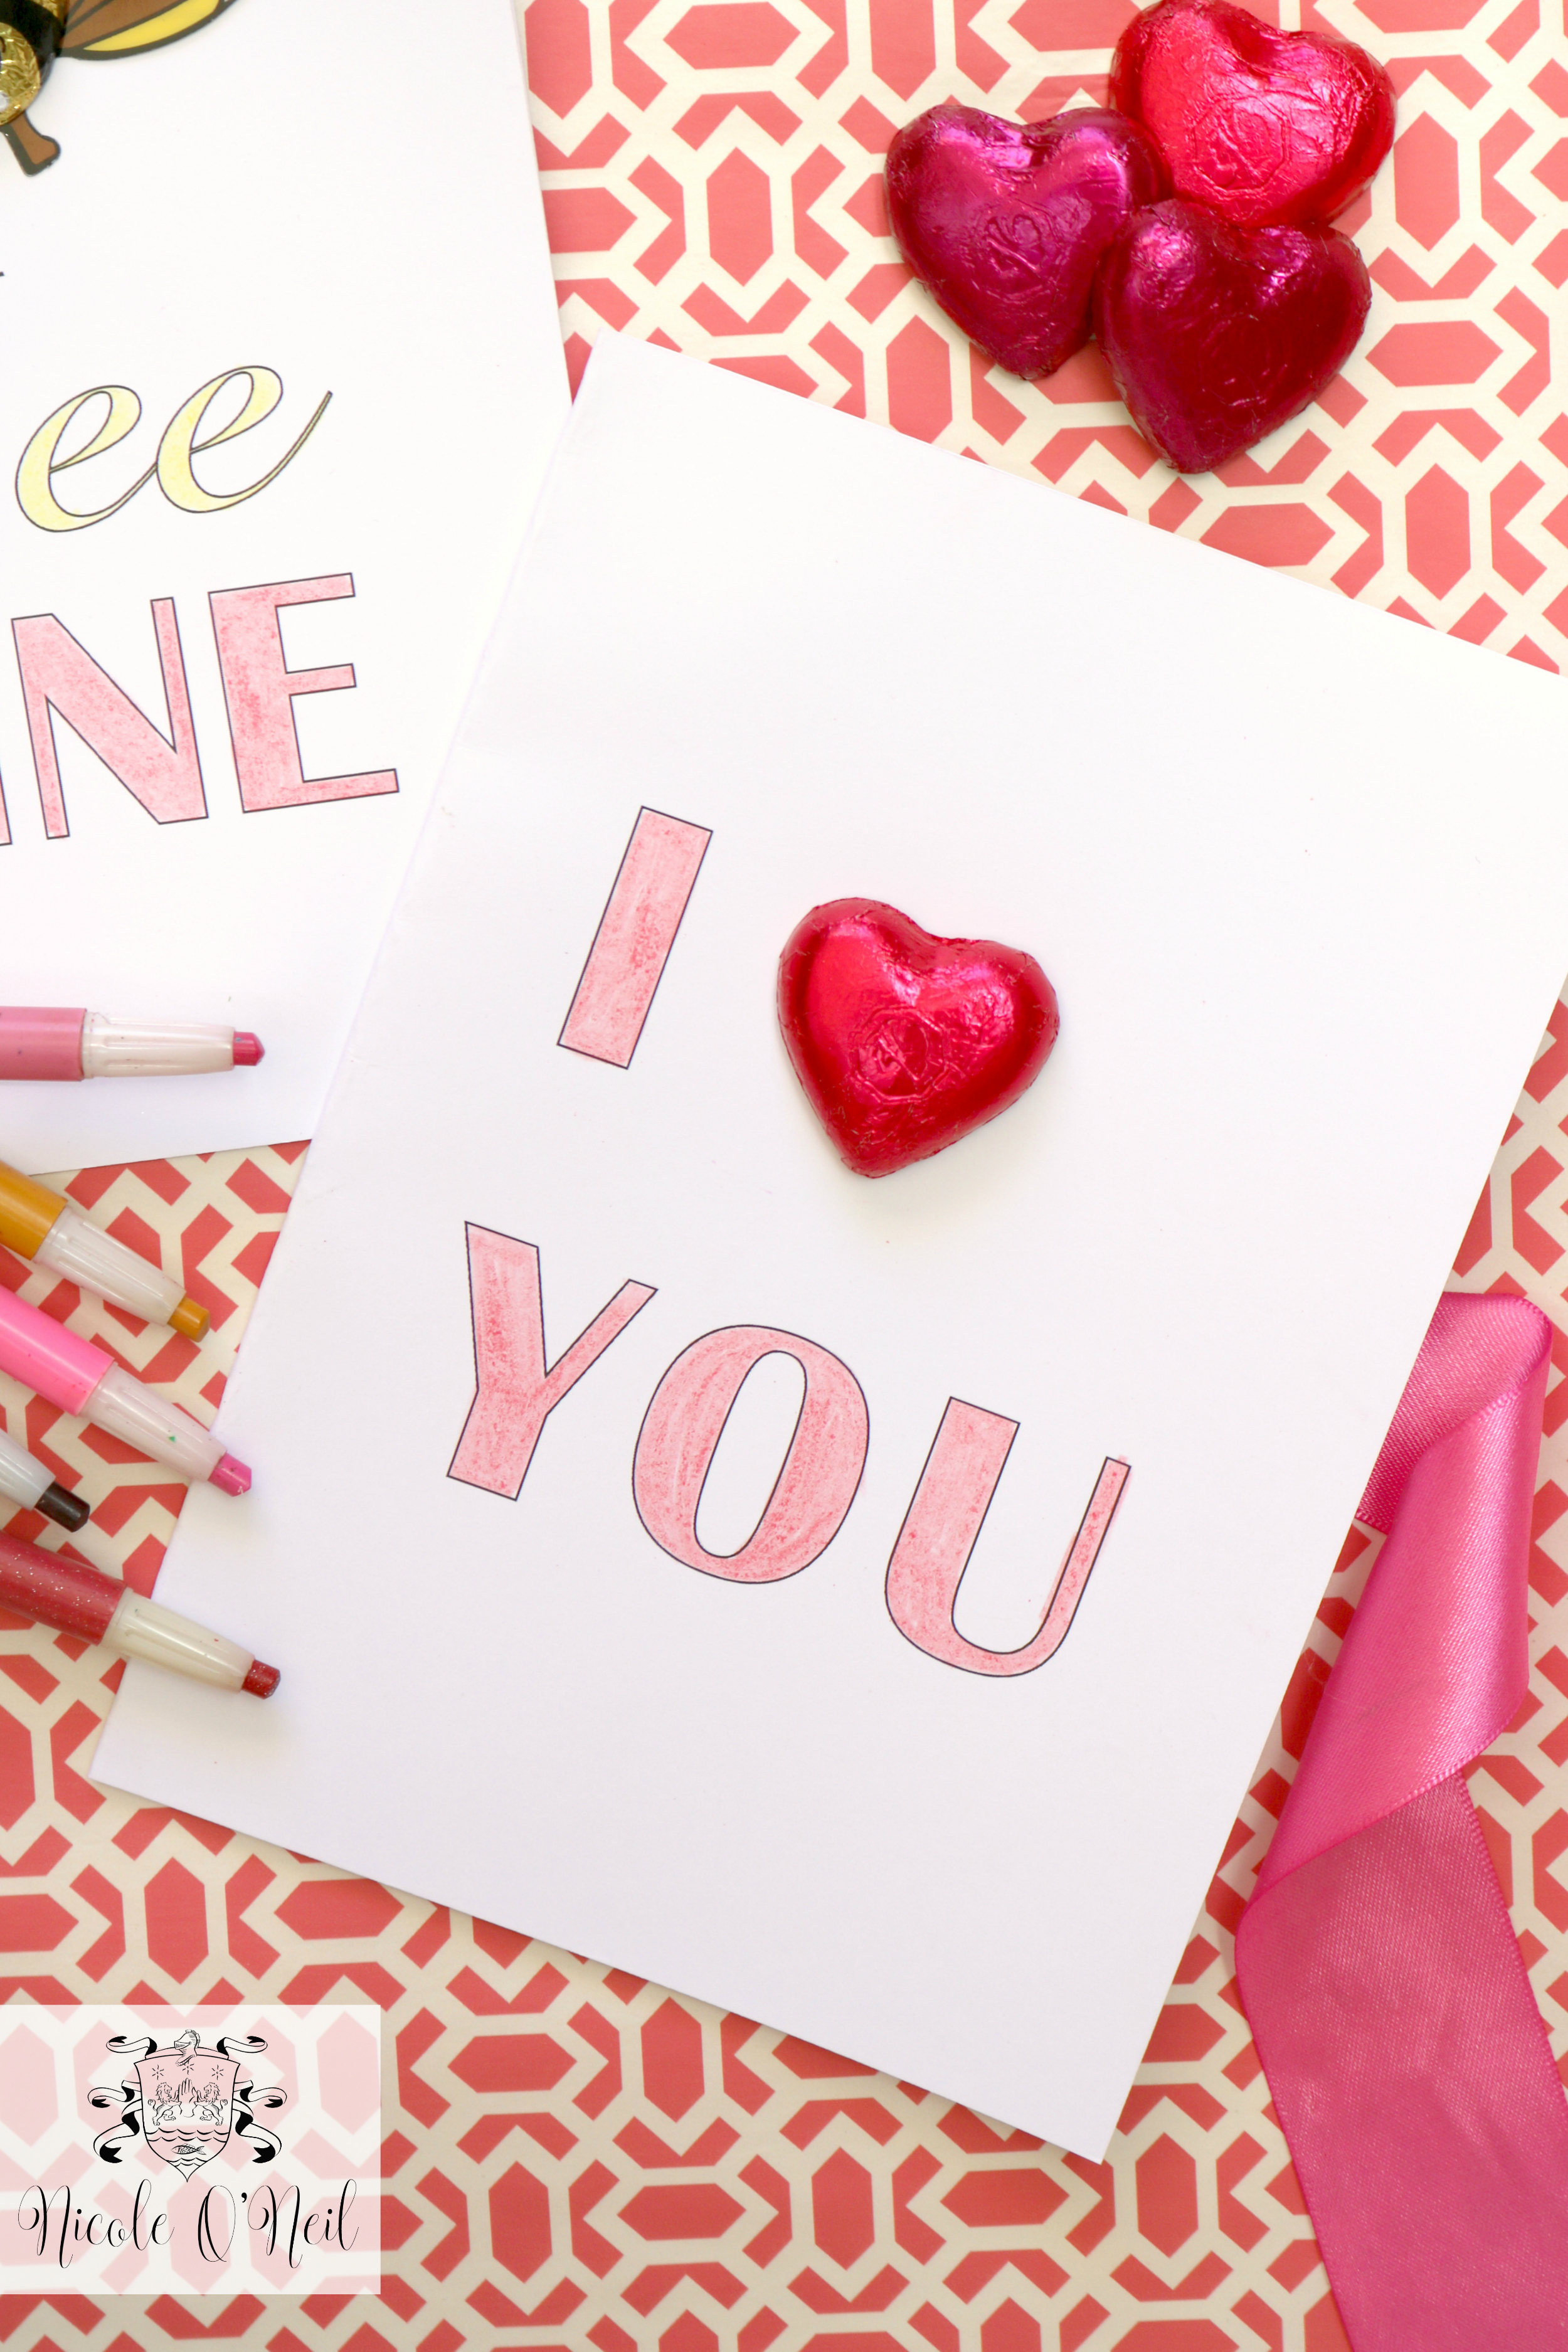 I Love You Foil Wrapped Chocolate Hearts Free Printable Valentines Day Cards and Instructions - Cute Valentines Crafts for Kids